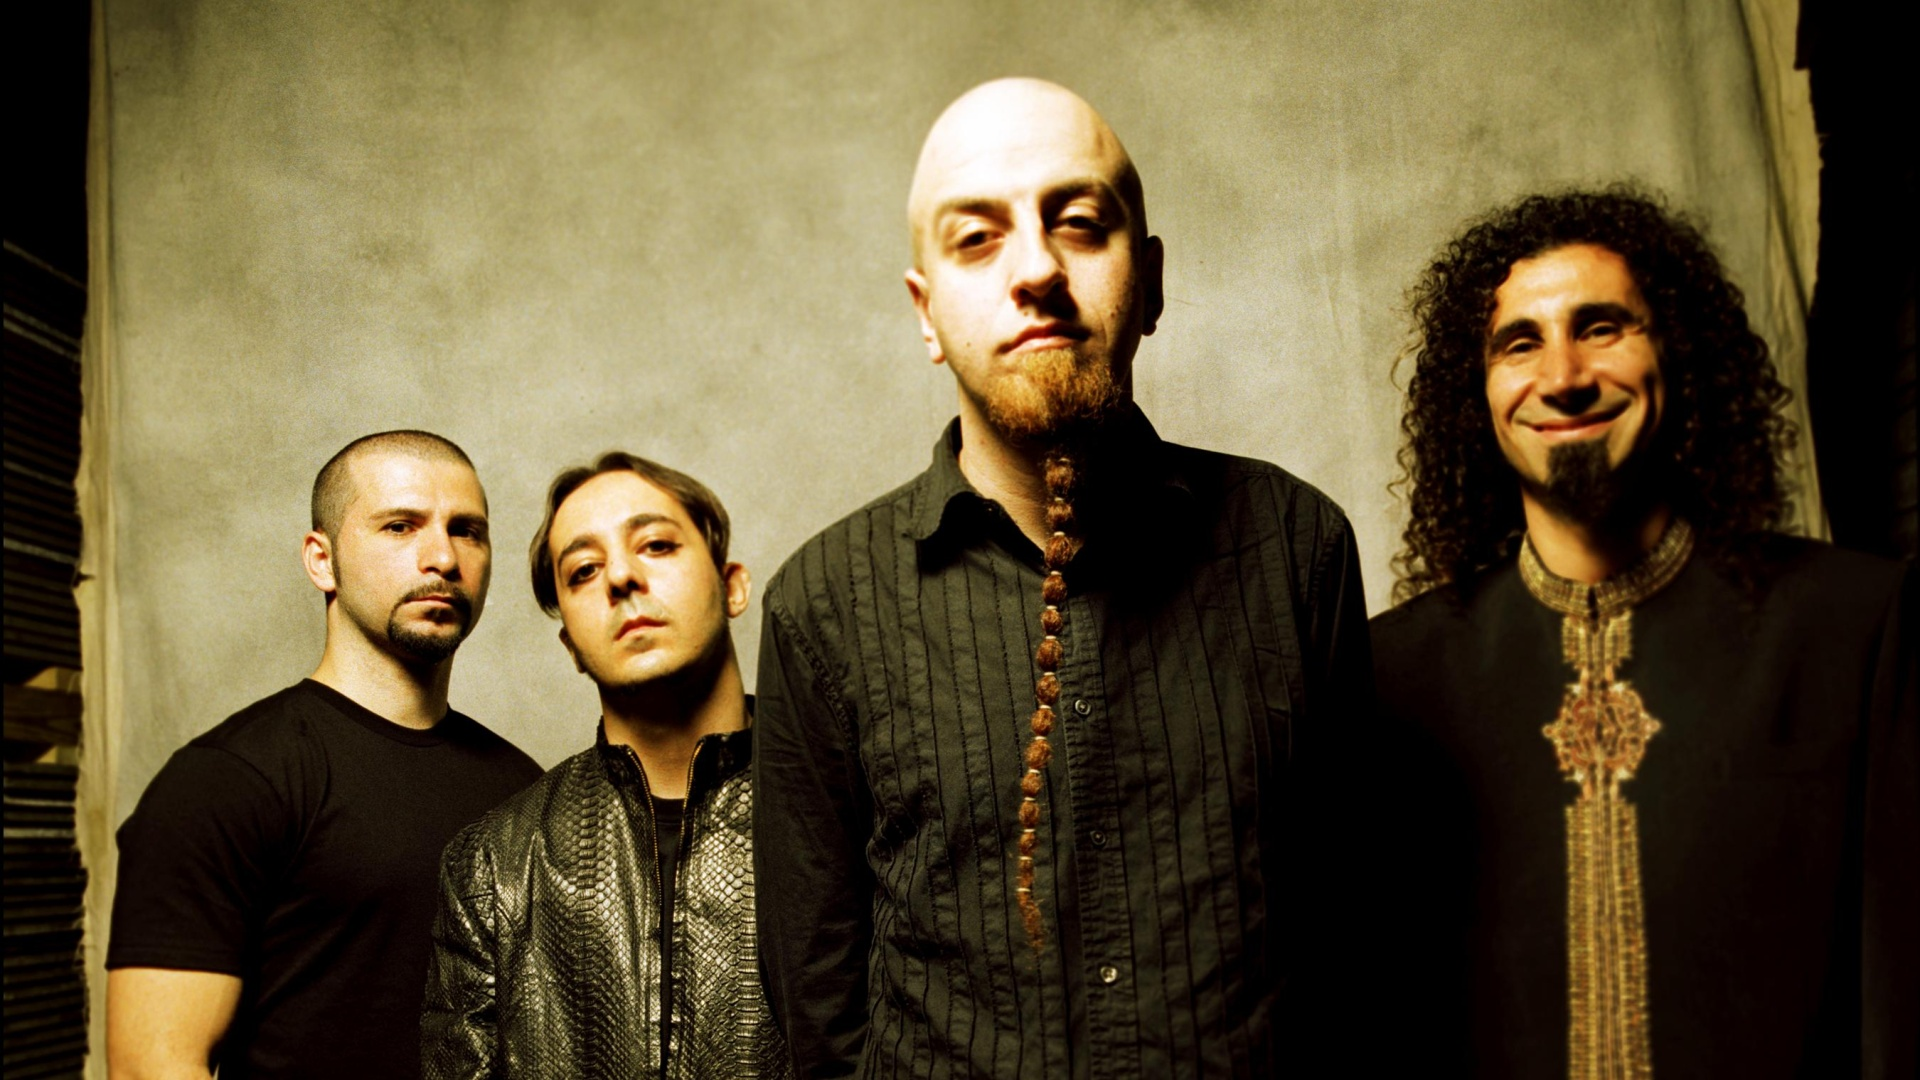 System Of A Down Backgrounds on Wallpapers Vista